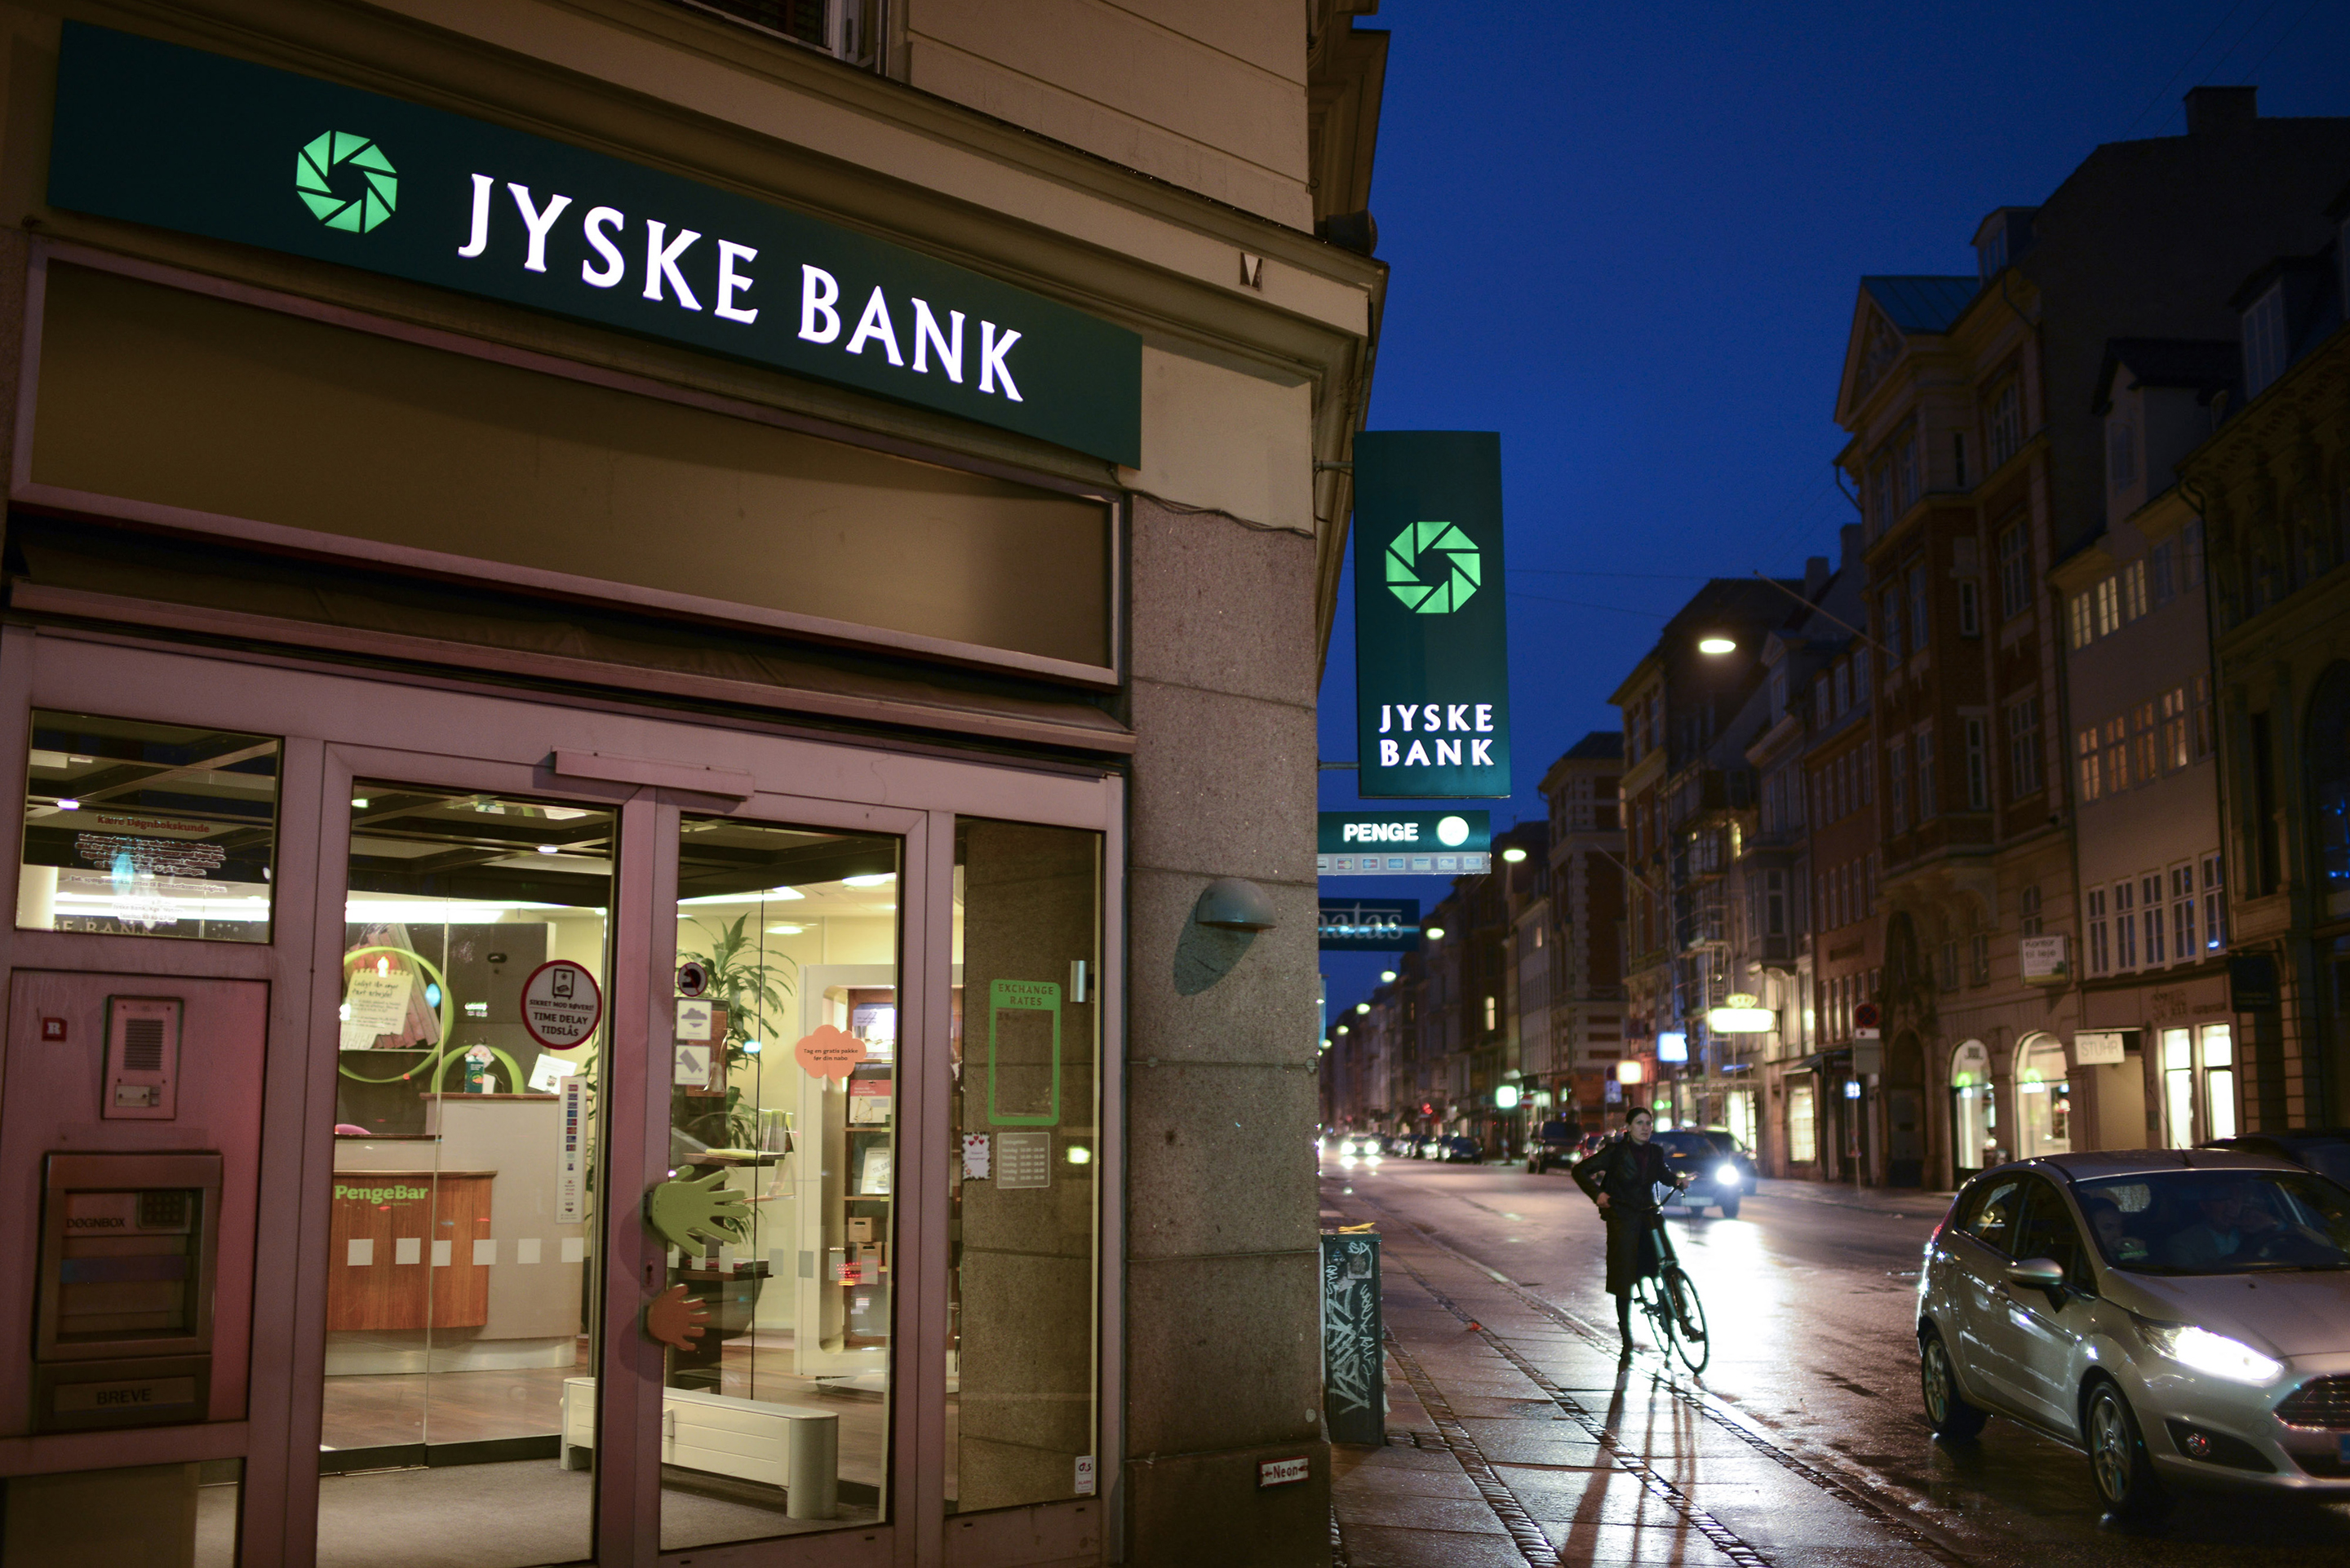 Bank Home Mortgage Rates This Danish Bank Is Offering Negative Mortgage Rates